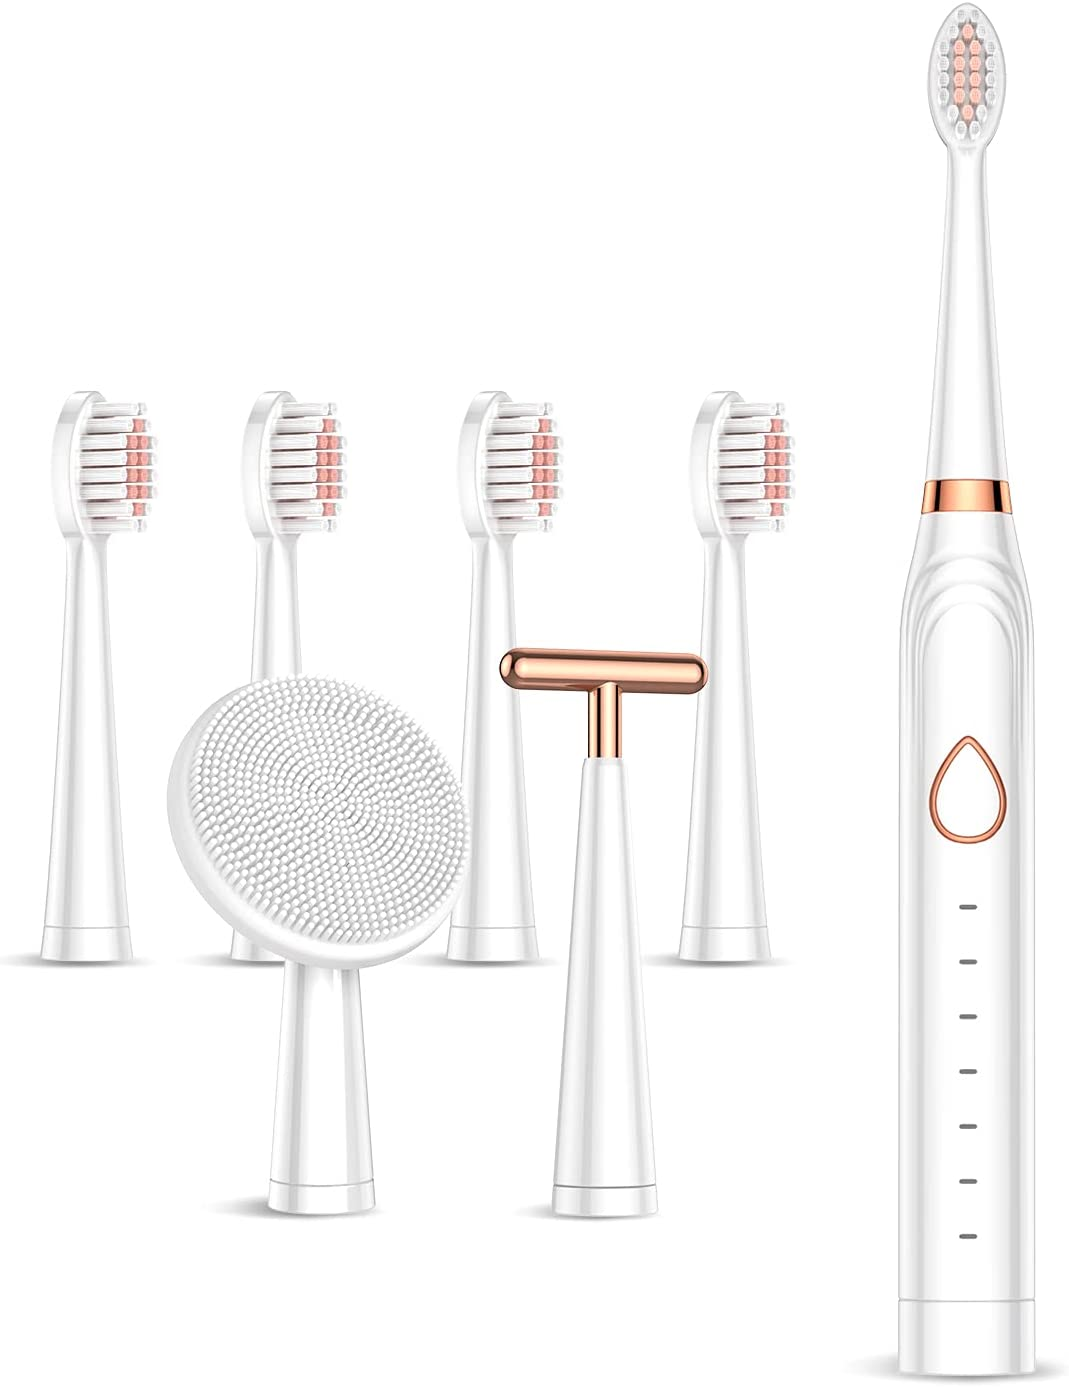 Rechargeable Electric Toothbrush Sonic Cleaning Powerful Max 50% OFF Tooth Bombing free shipping